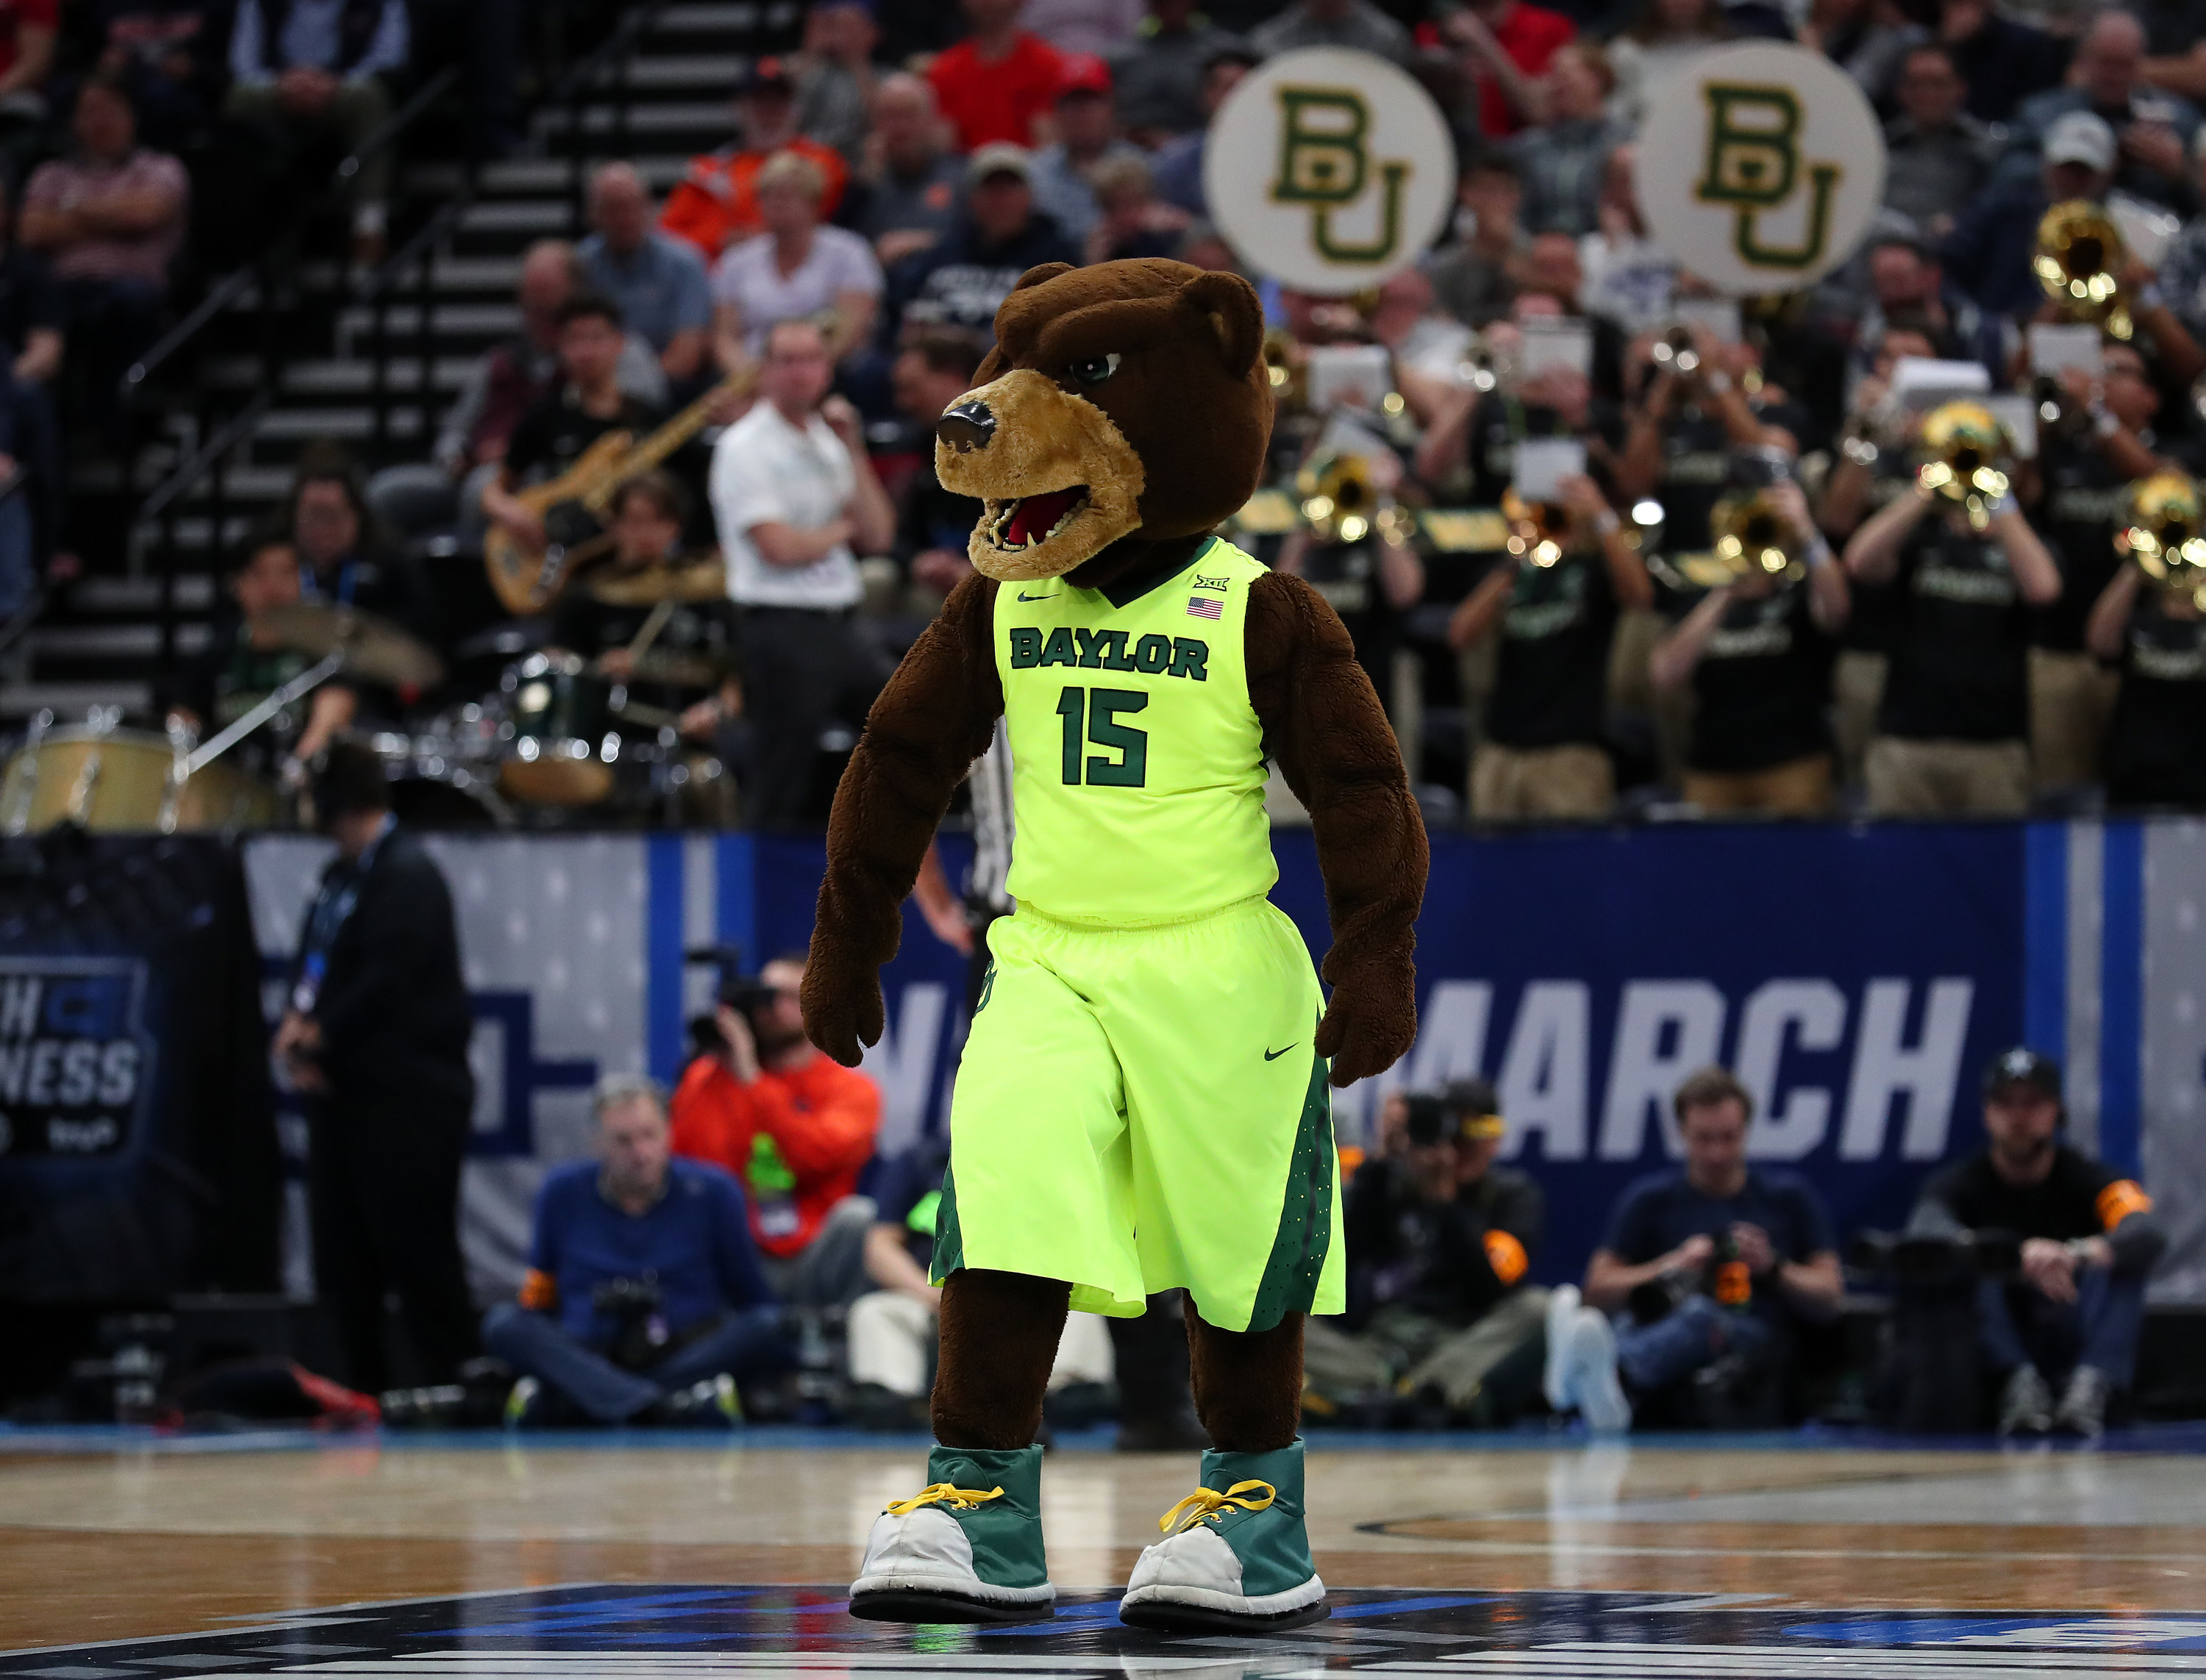 Baylor bear mascot on the court.